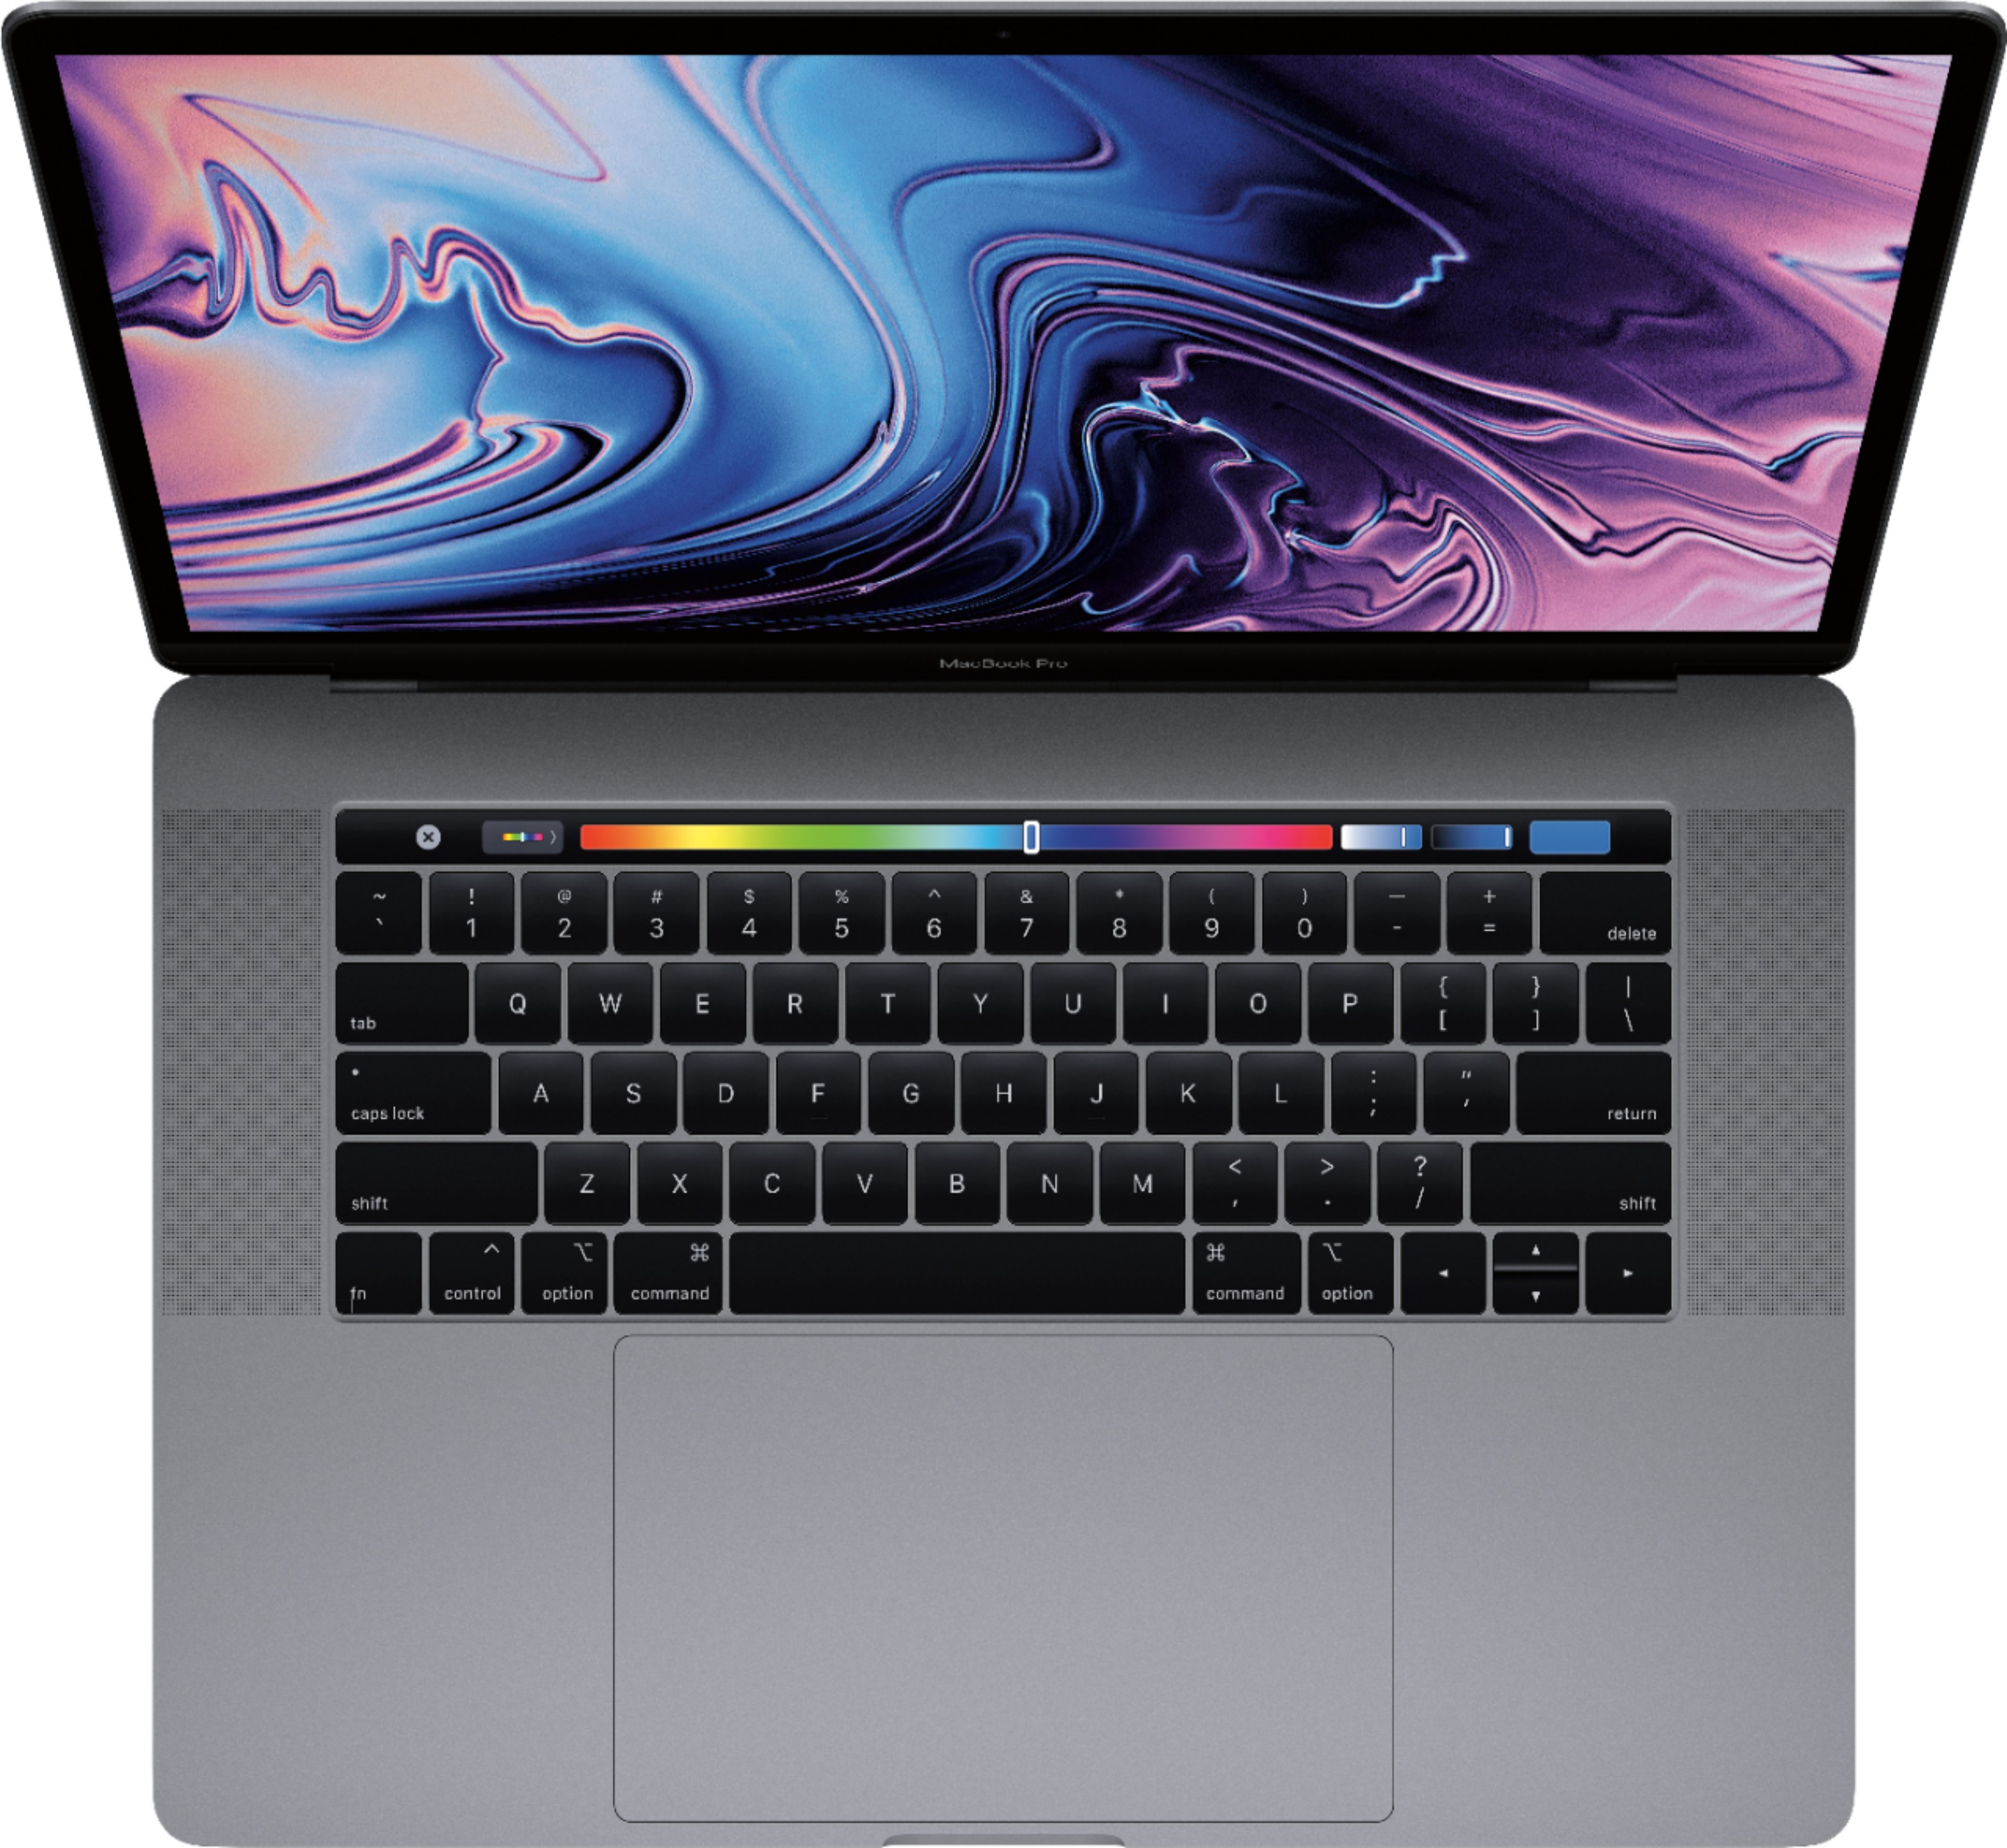 "Alt View Zoom 12. Apple - MacBook Pro 15.4"" Display with Touch Bar - Intel Core i9 - 32GB Memory - AMD Radeon Pro 560X - 1TB SSD - Space Gray."